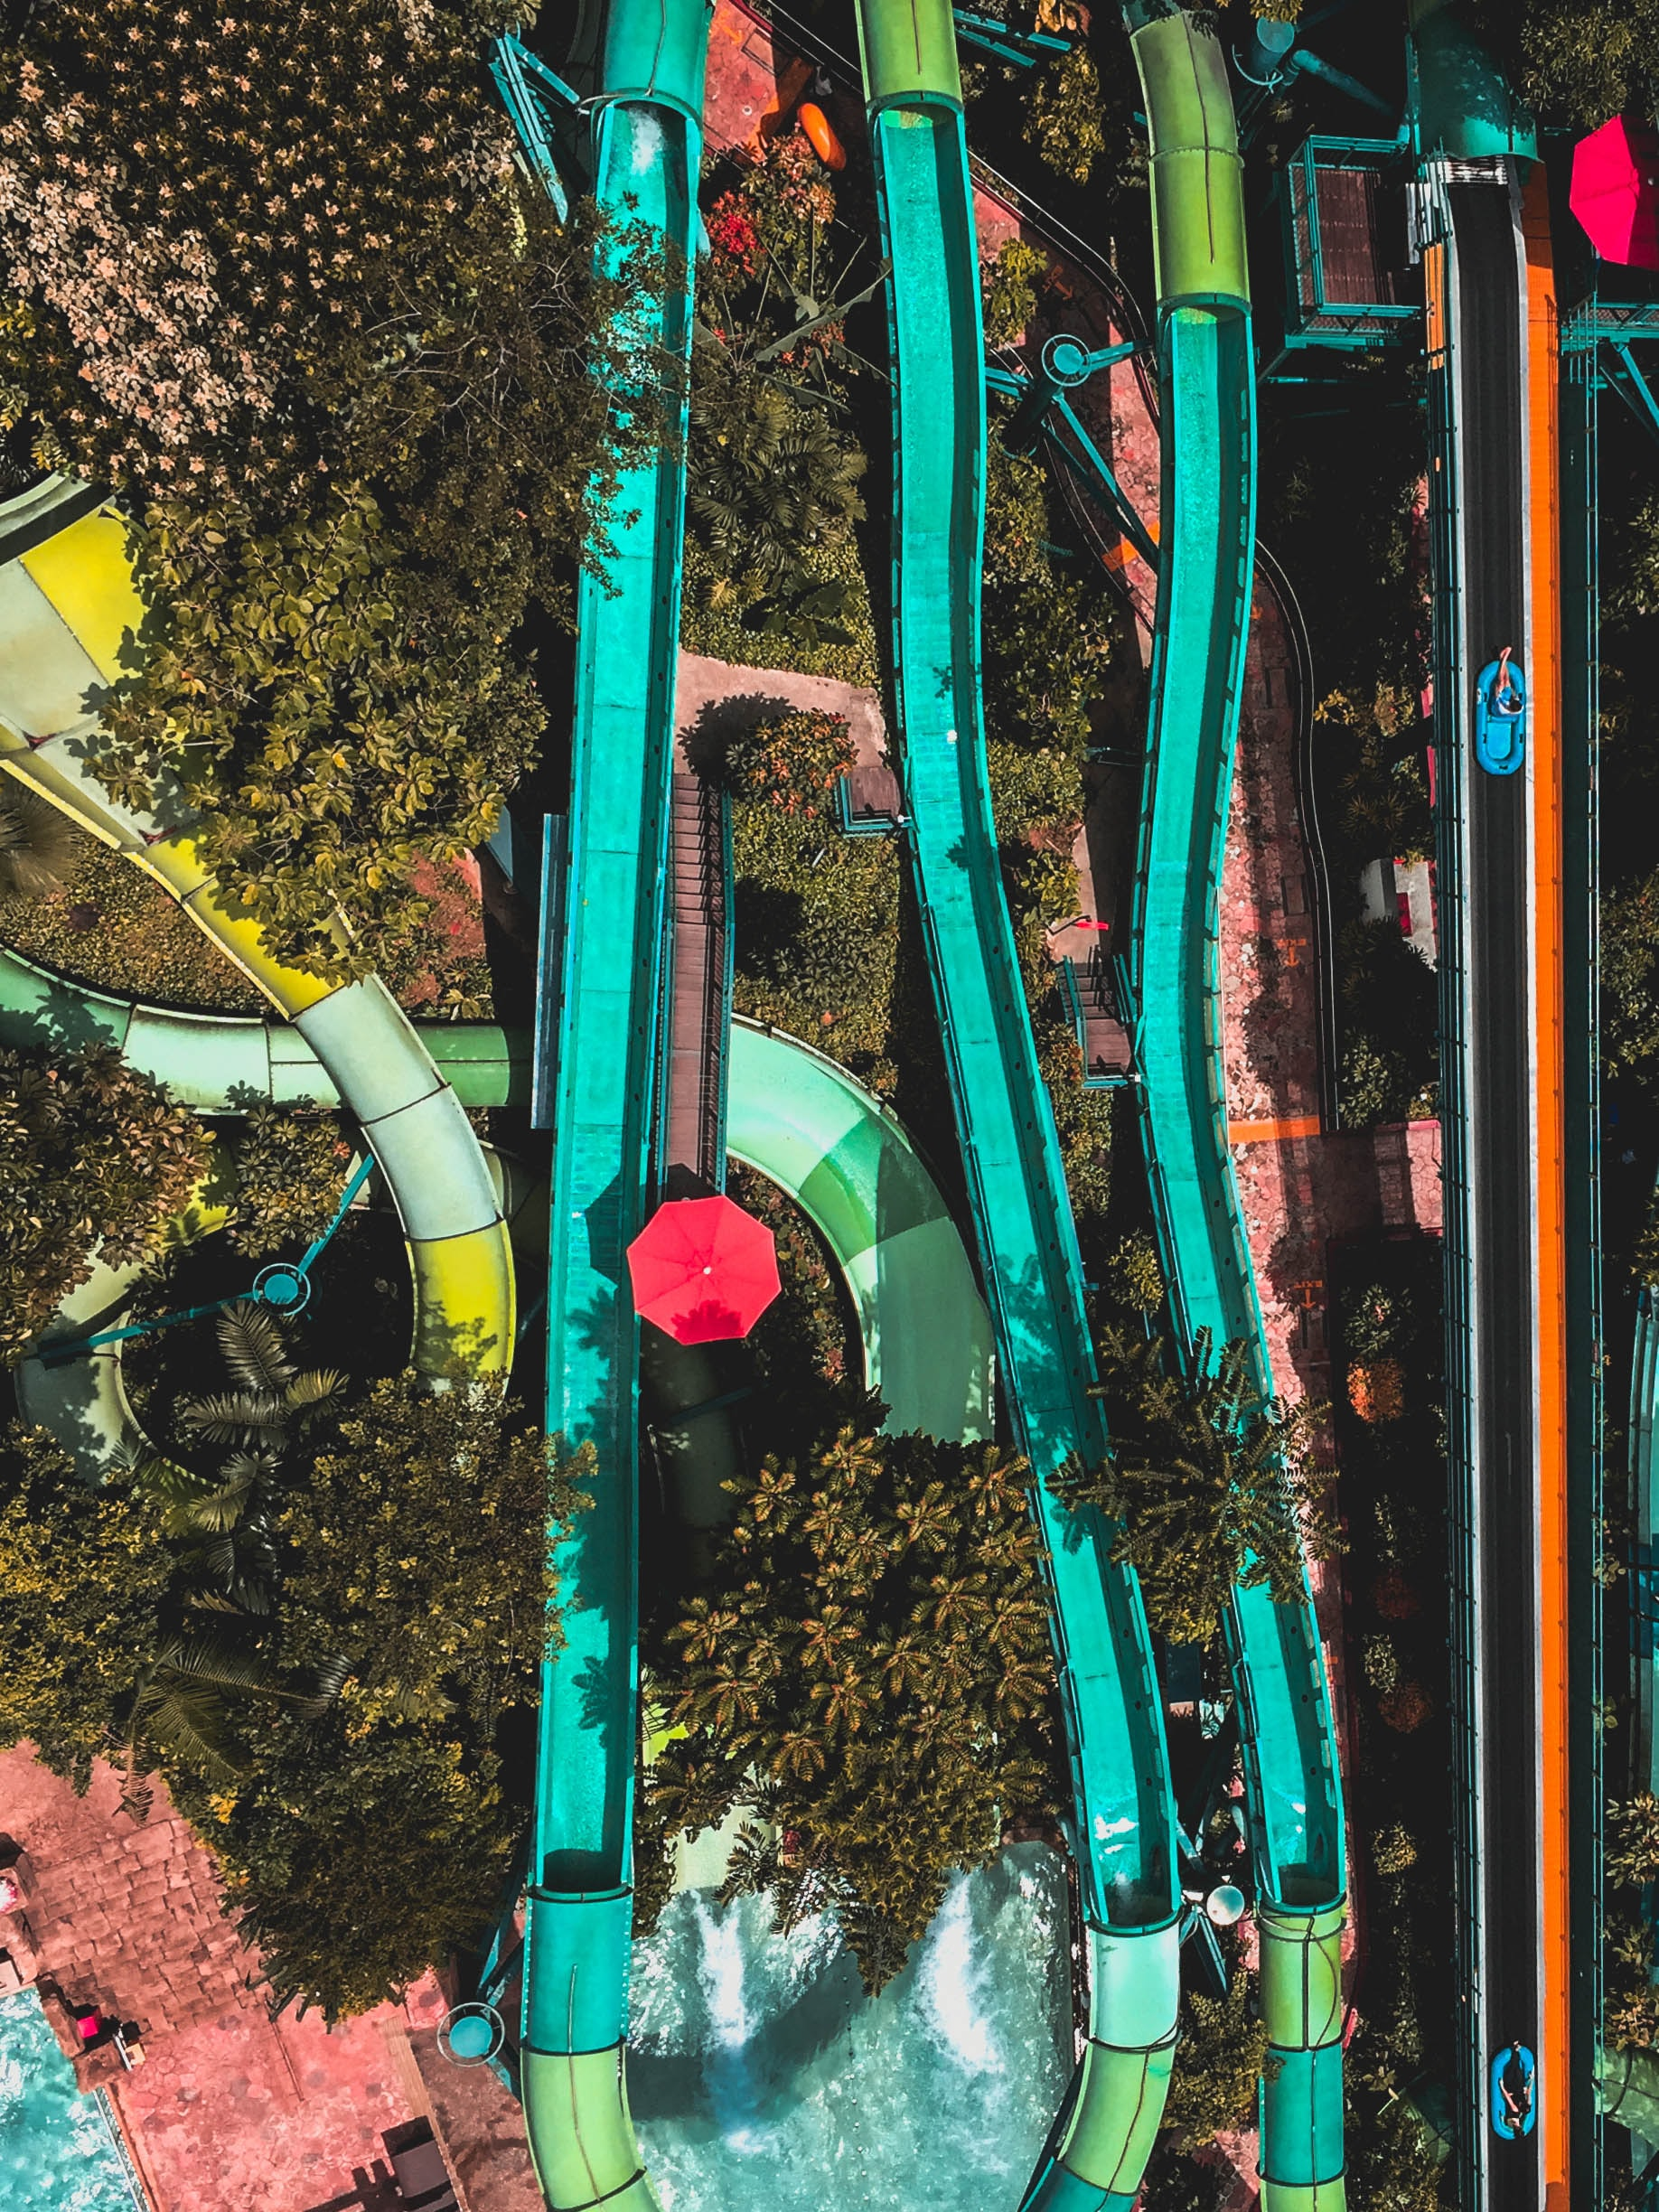 Drone aerial view of the colorful water slides from a Singapore Cable Car